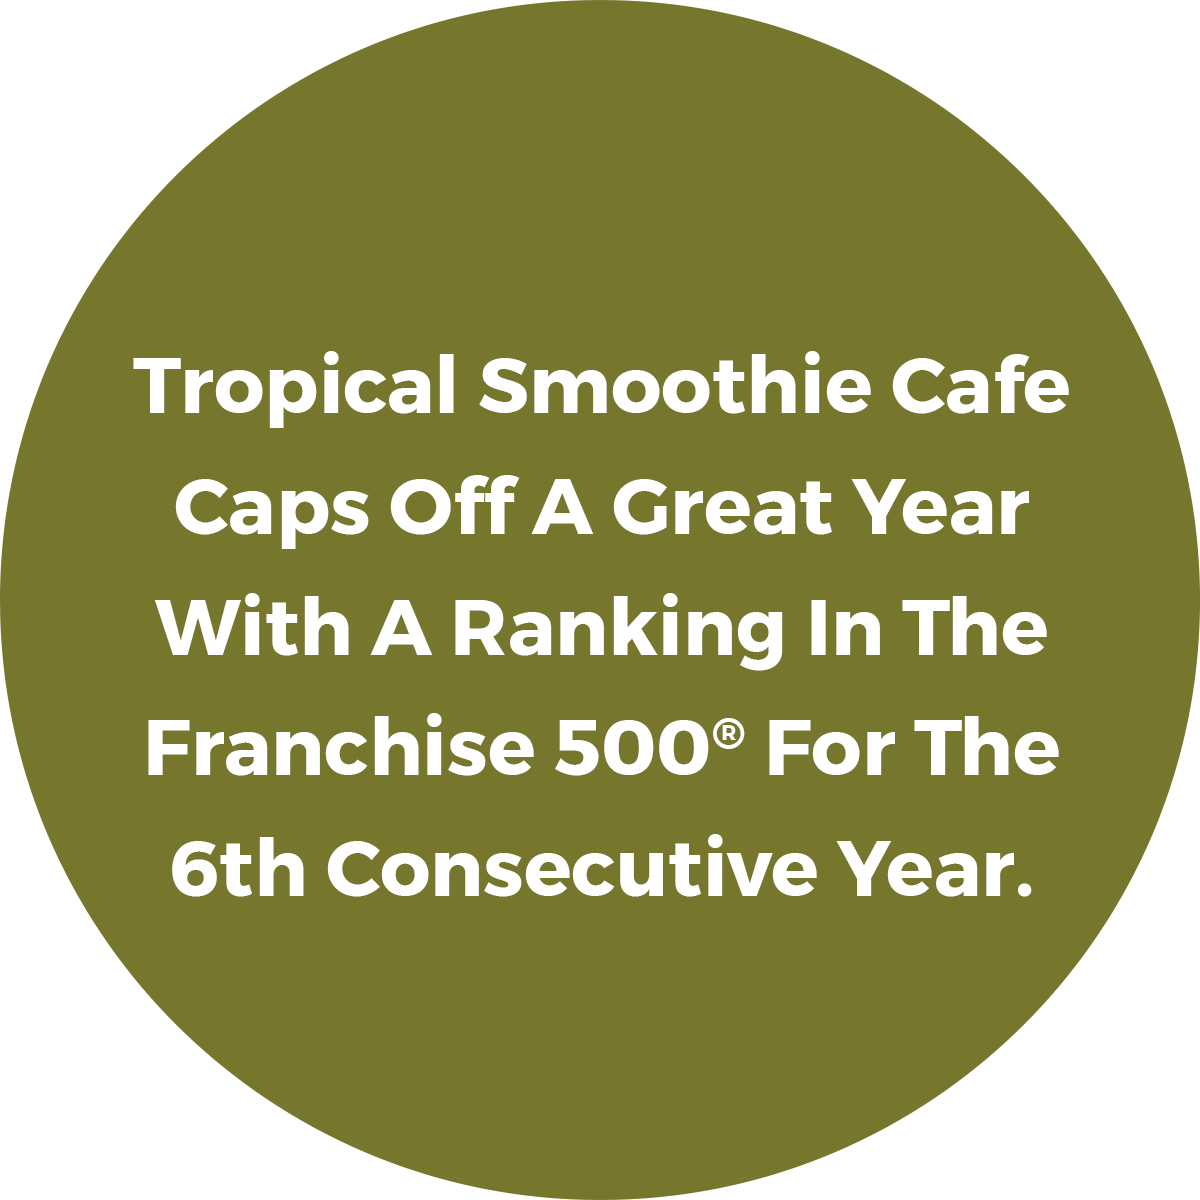 Tropical Smoothie Cafe Caps Off A Great Year With A Ranking In the Franchise 500 For the 6th Consecutive Year